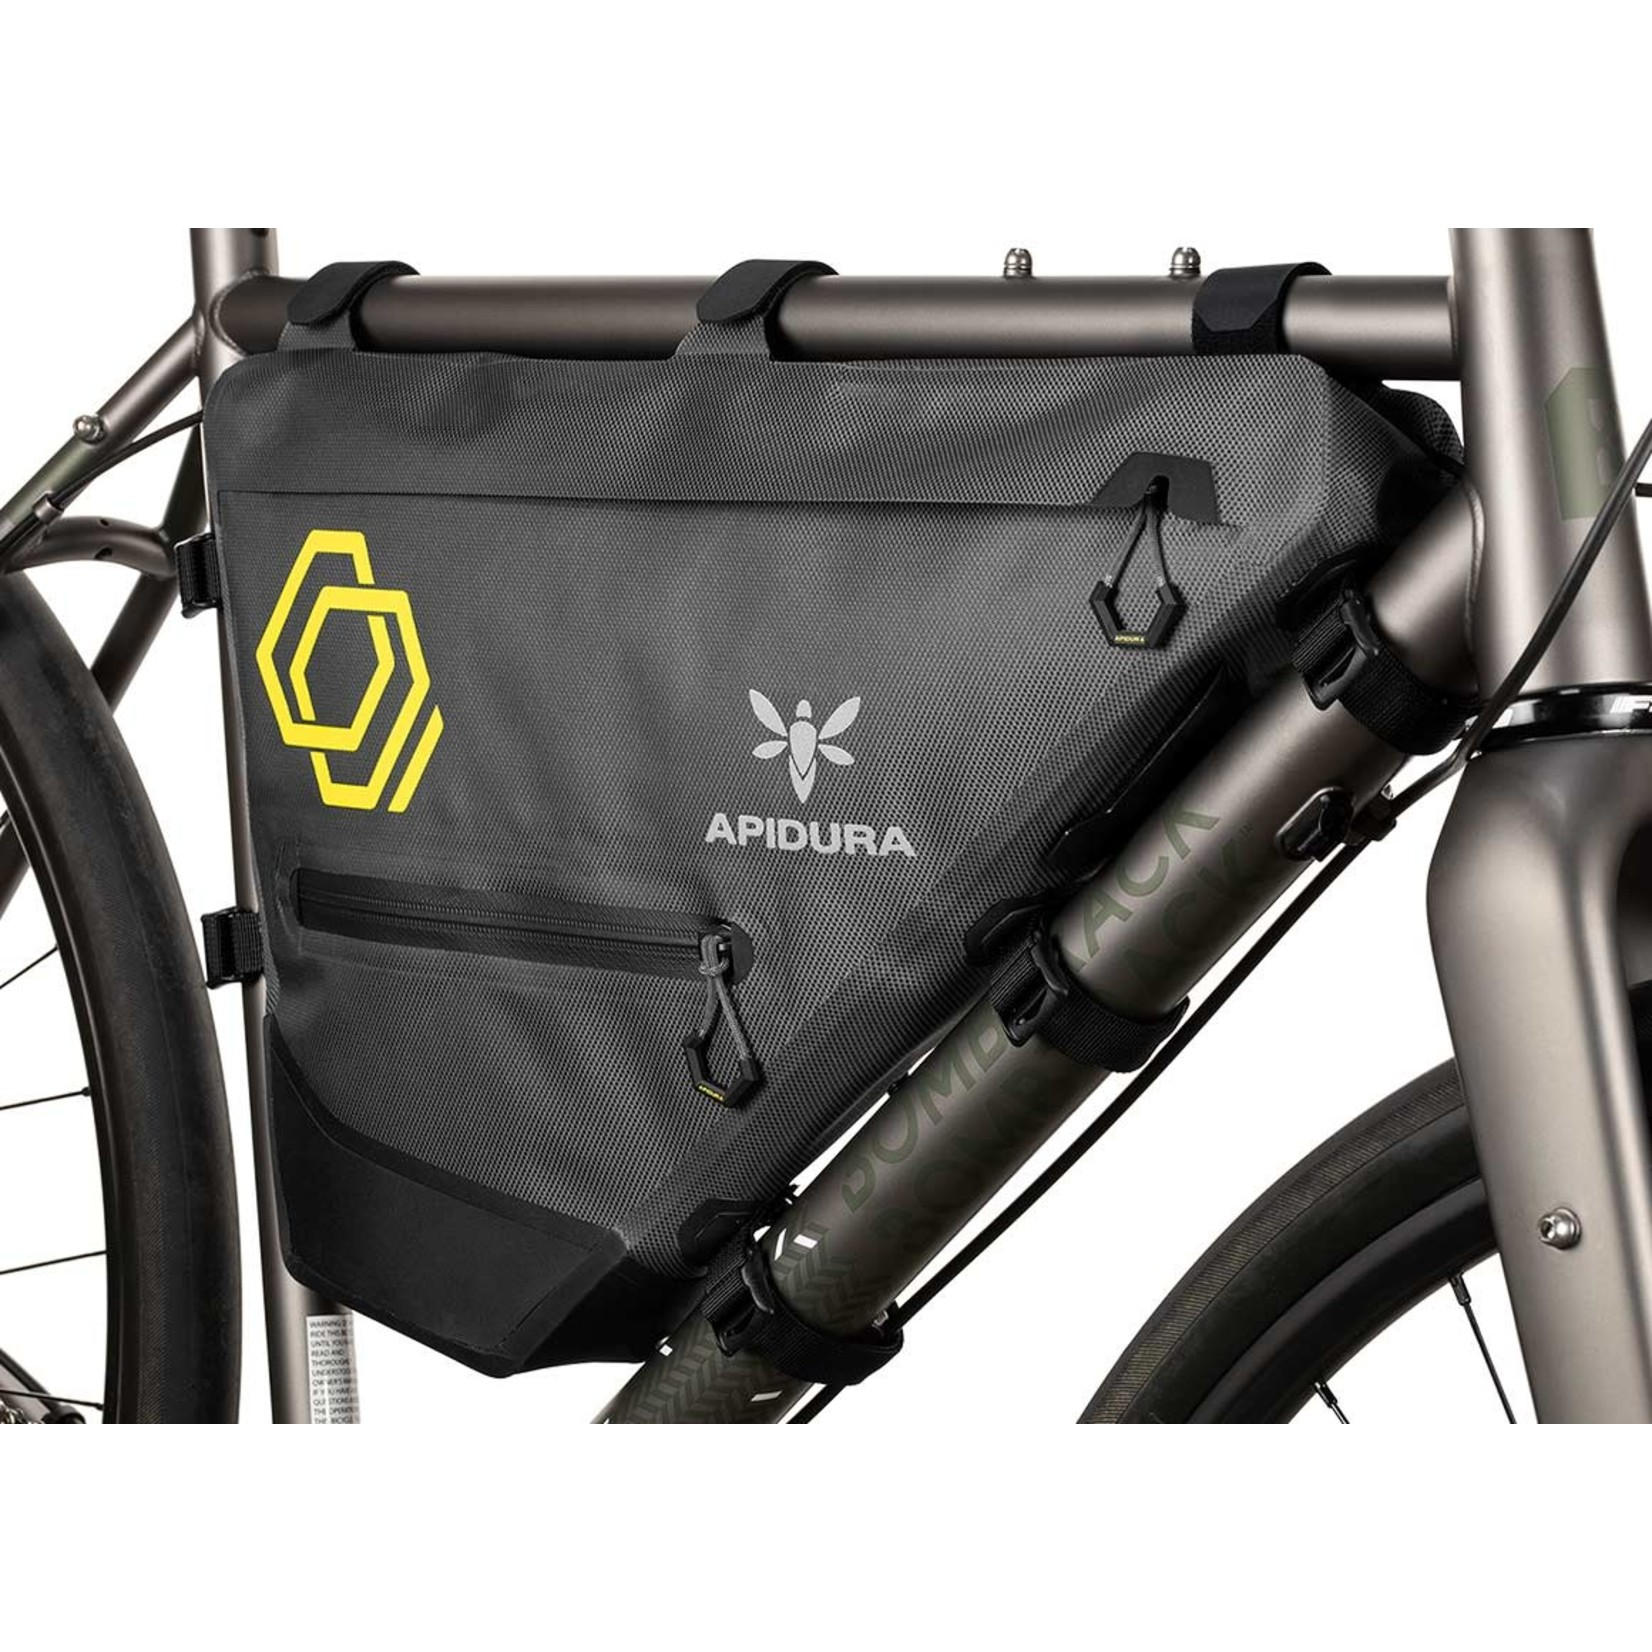 Apidura Apidura Expedition Full Frame Pack, 7.5 Litre (touring/bikepacking/randonneur/commuter bag)